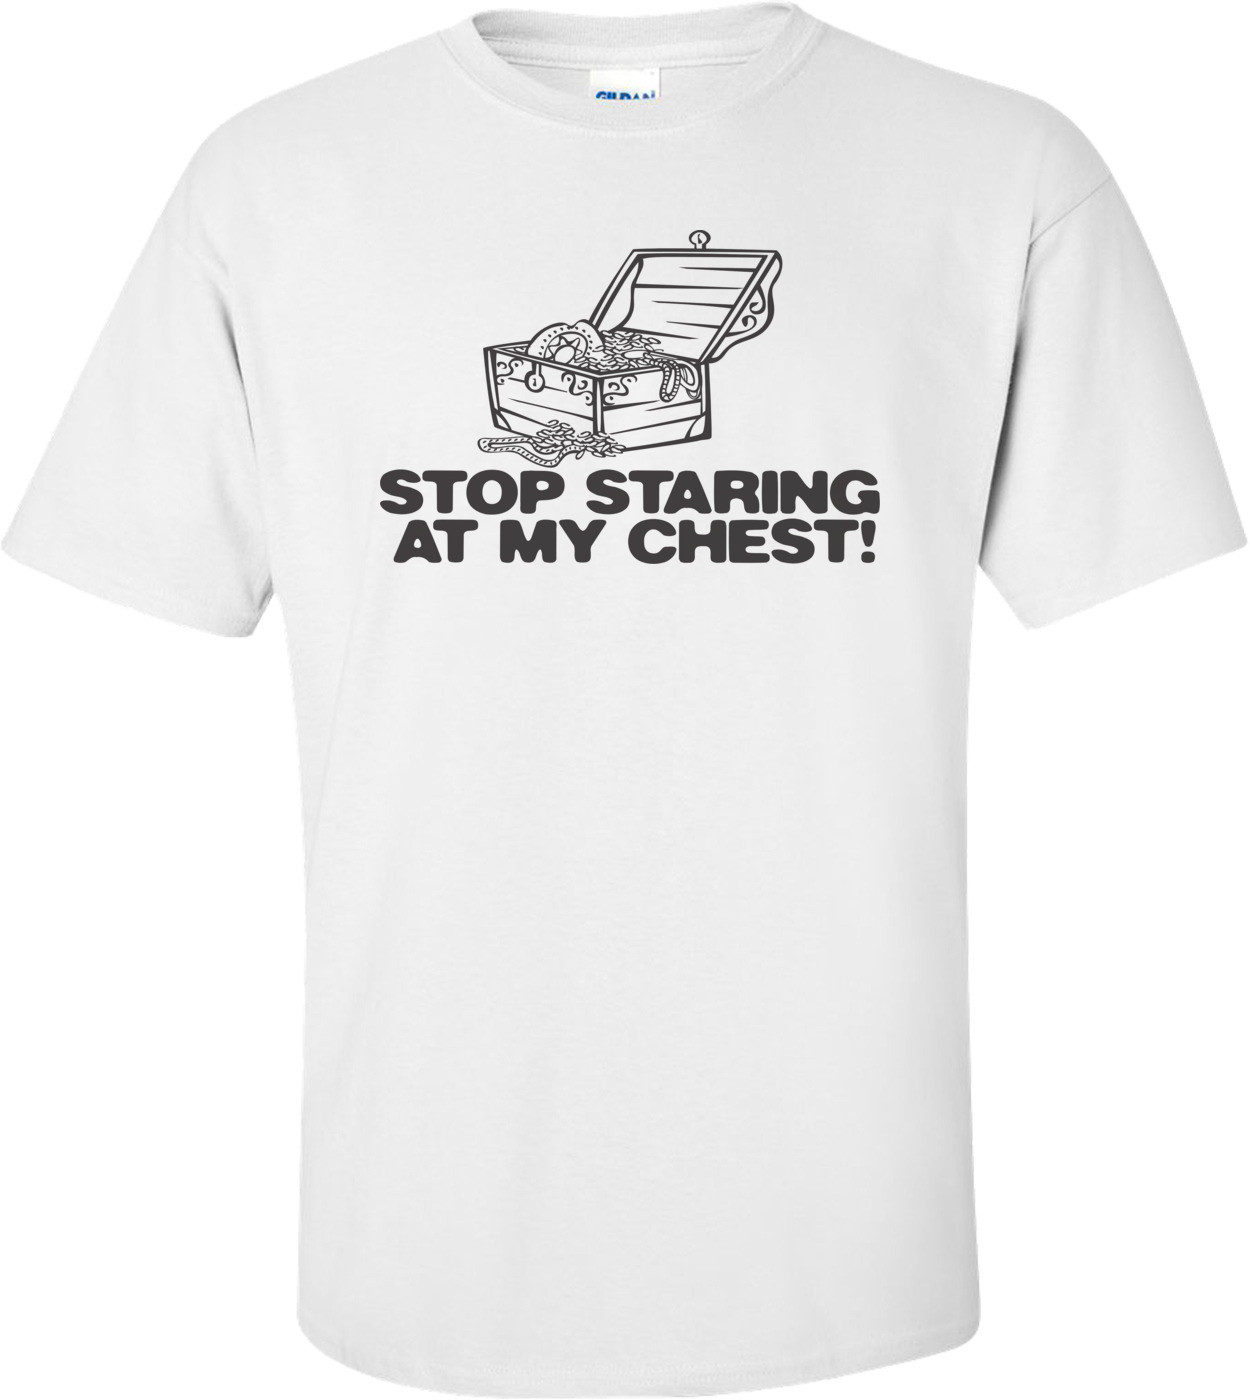 Stop Staring At My Chest T-shirt